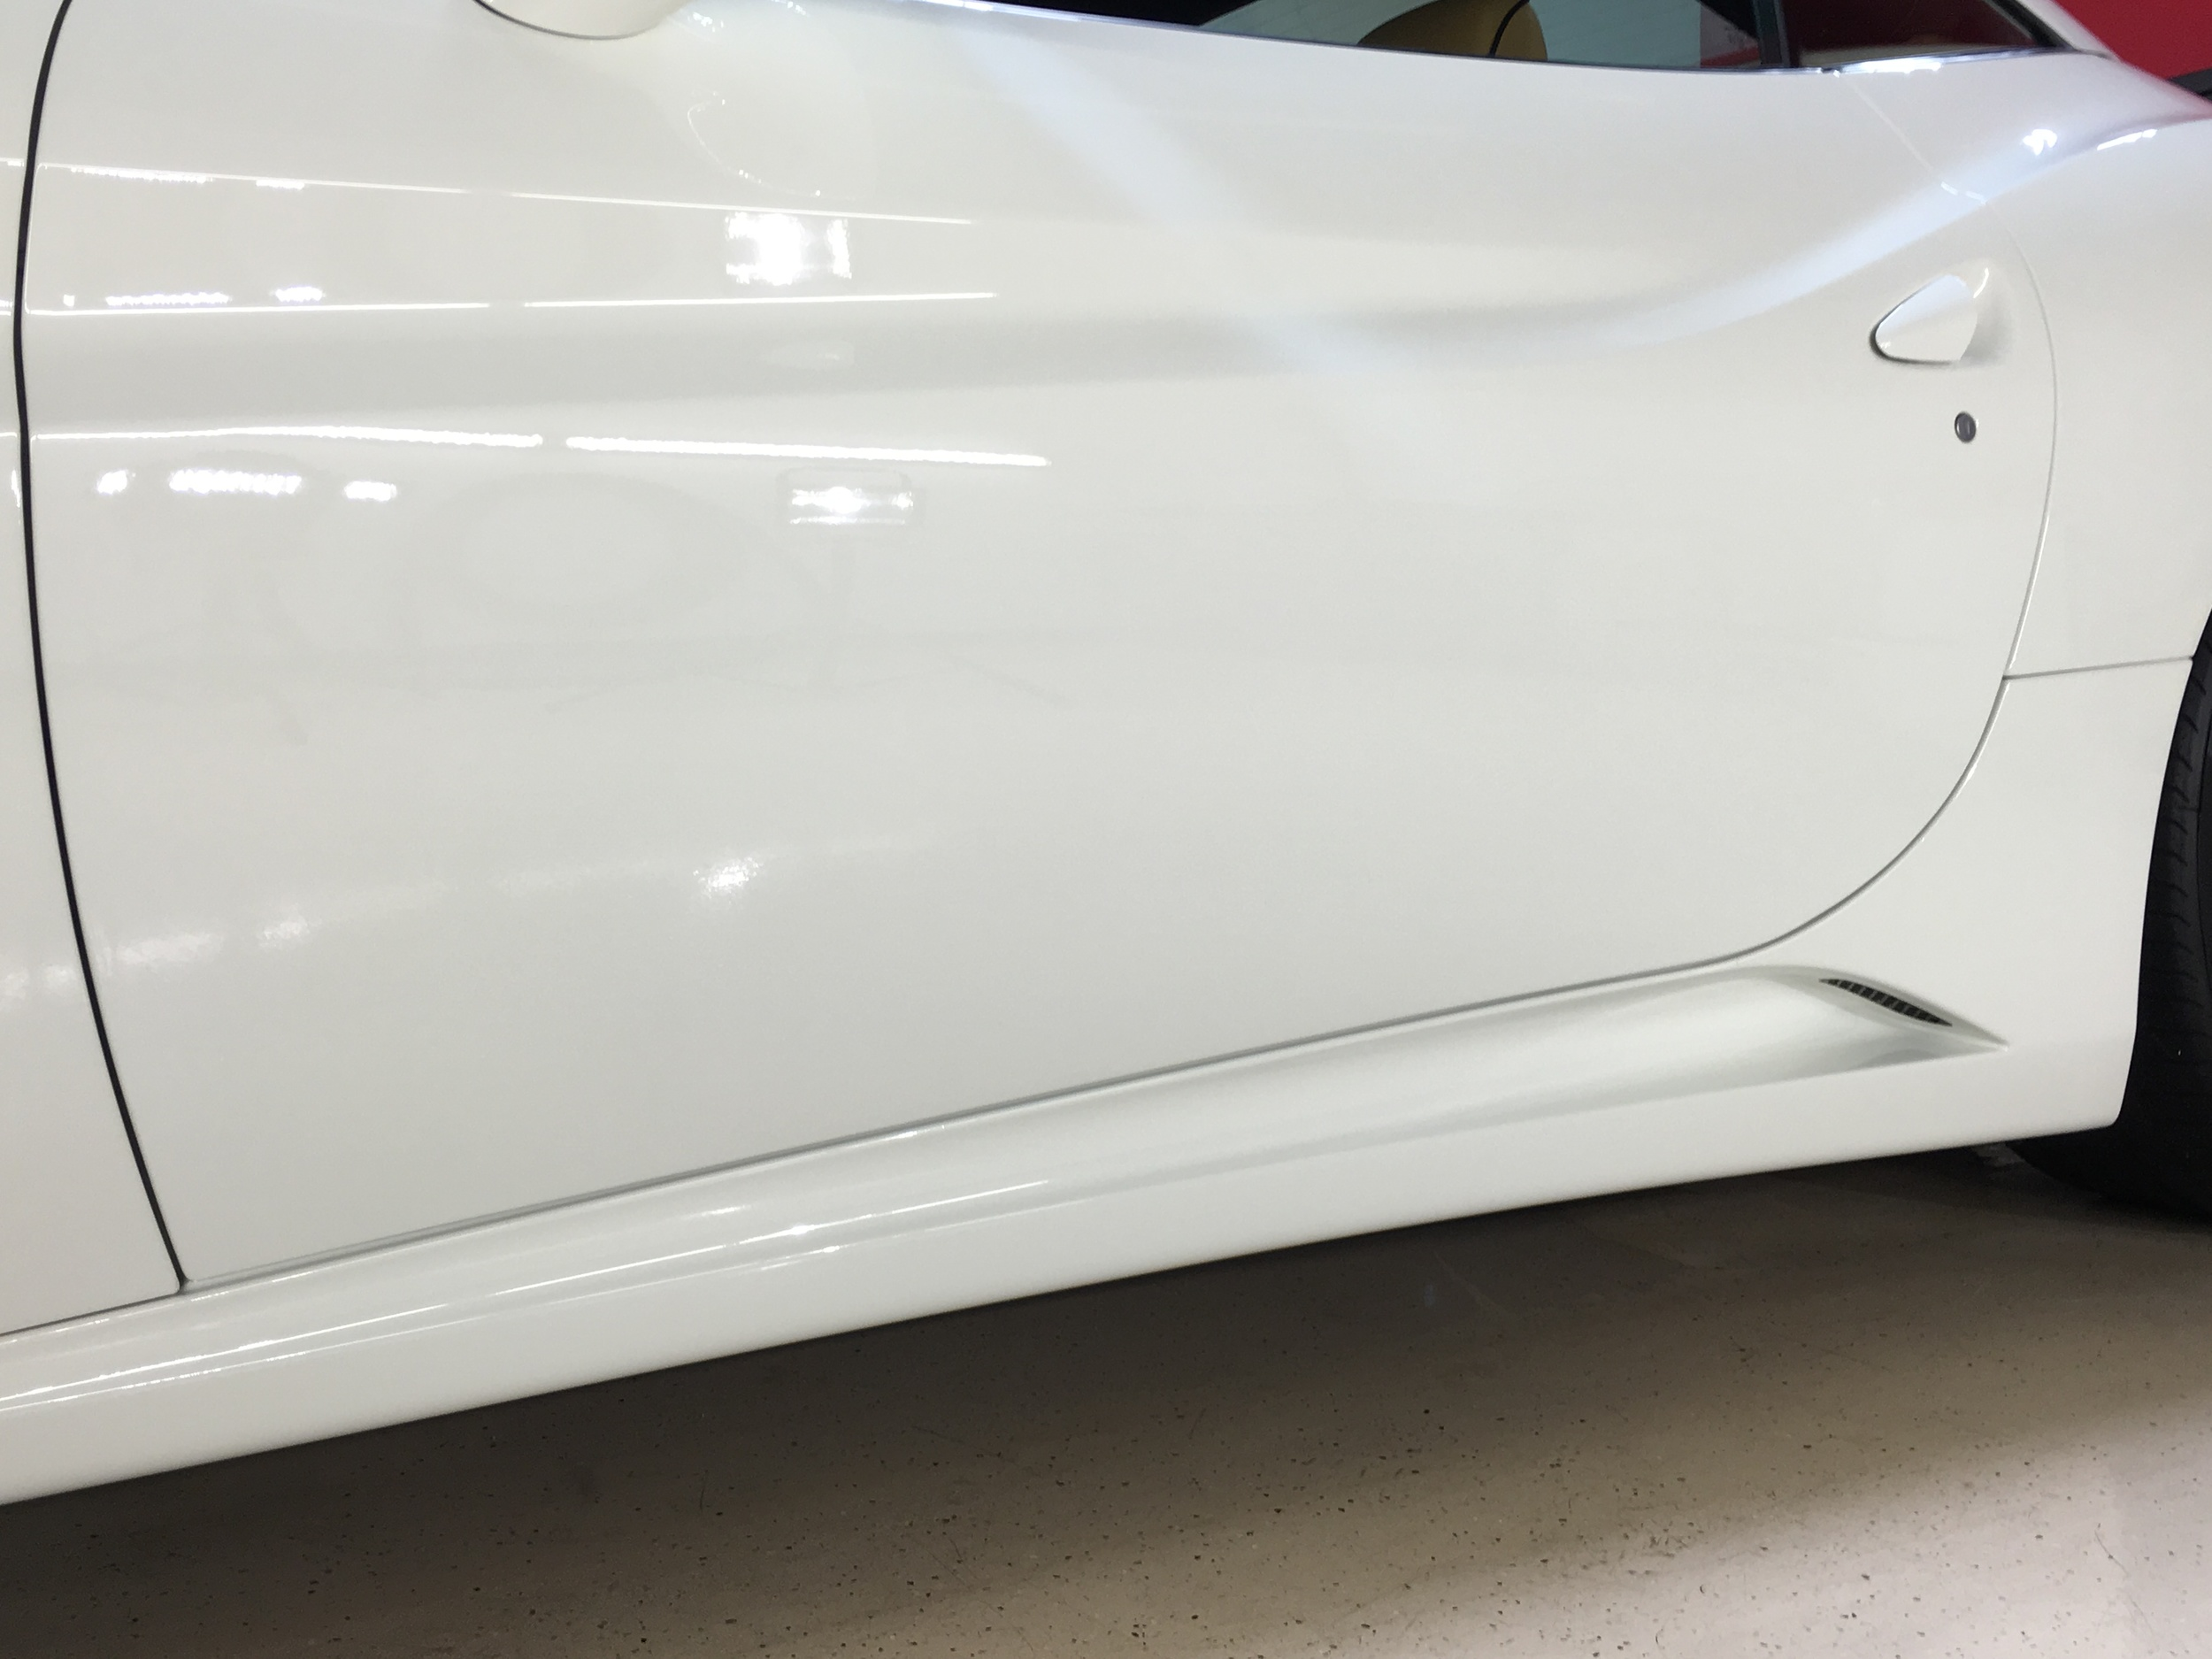 High-Gloss finish achieved through proper paint correction procedures and Ceramic Pro. White never shined so bright!